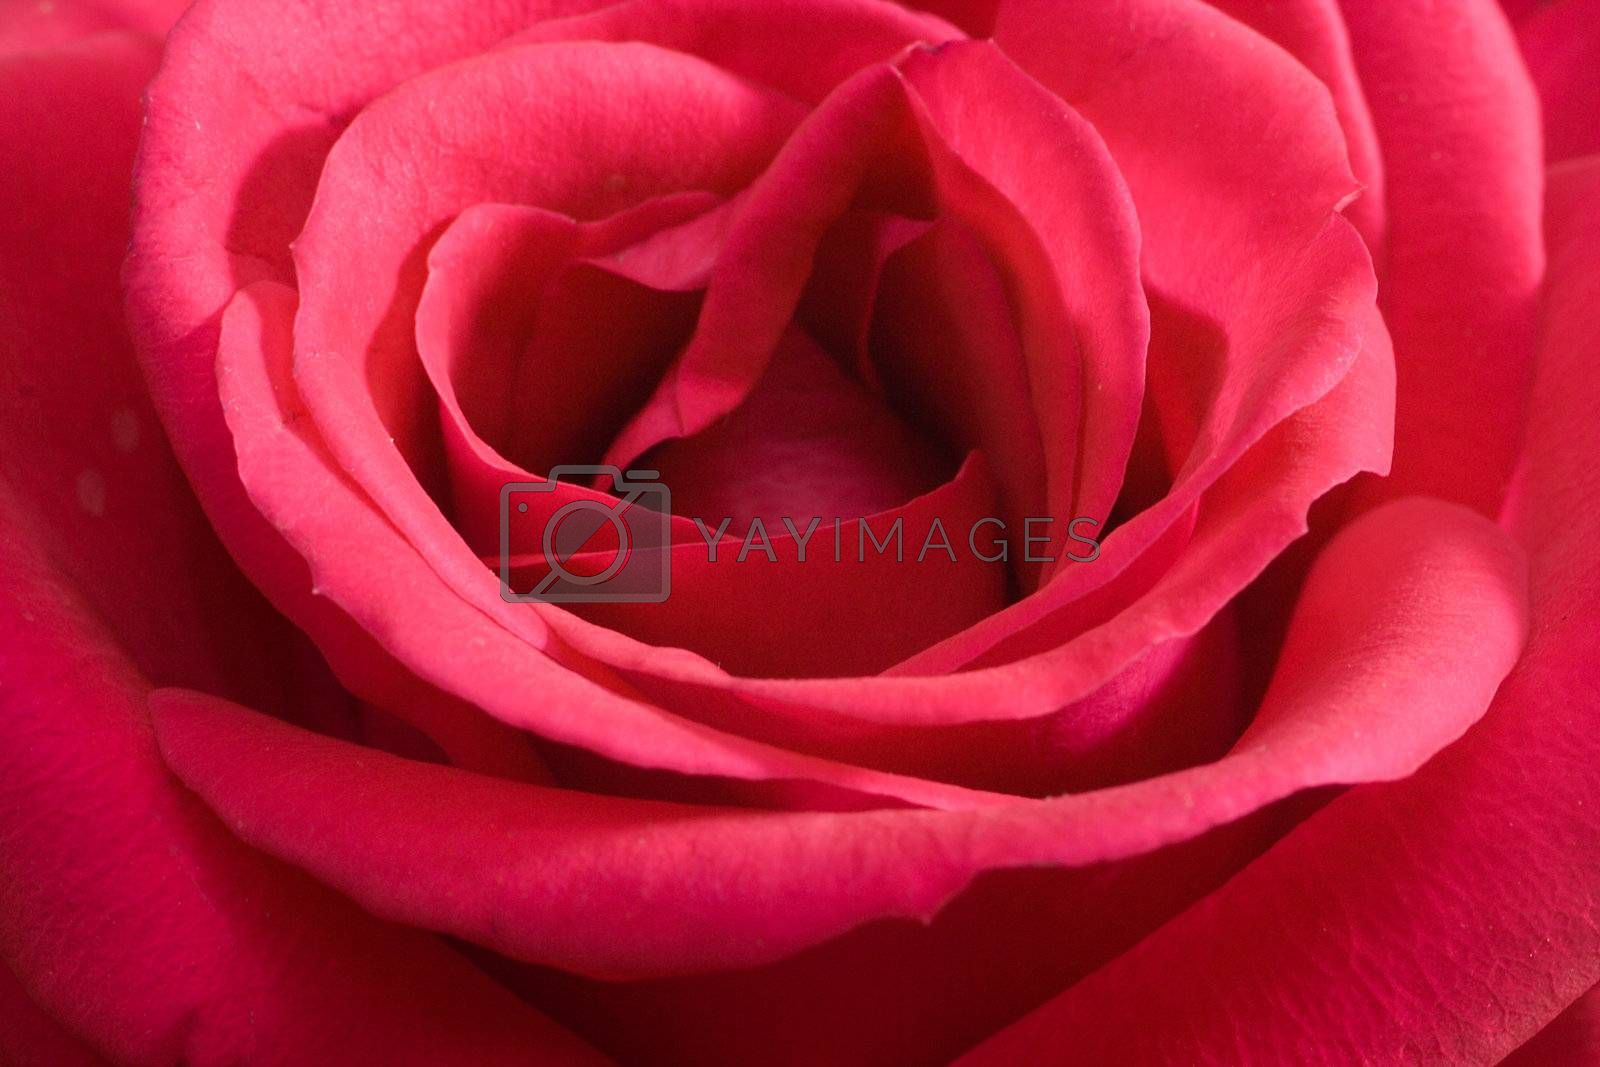 close-up pink rose, view from above, macro shot